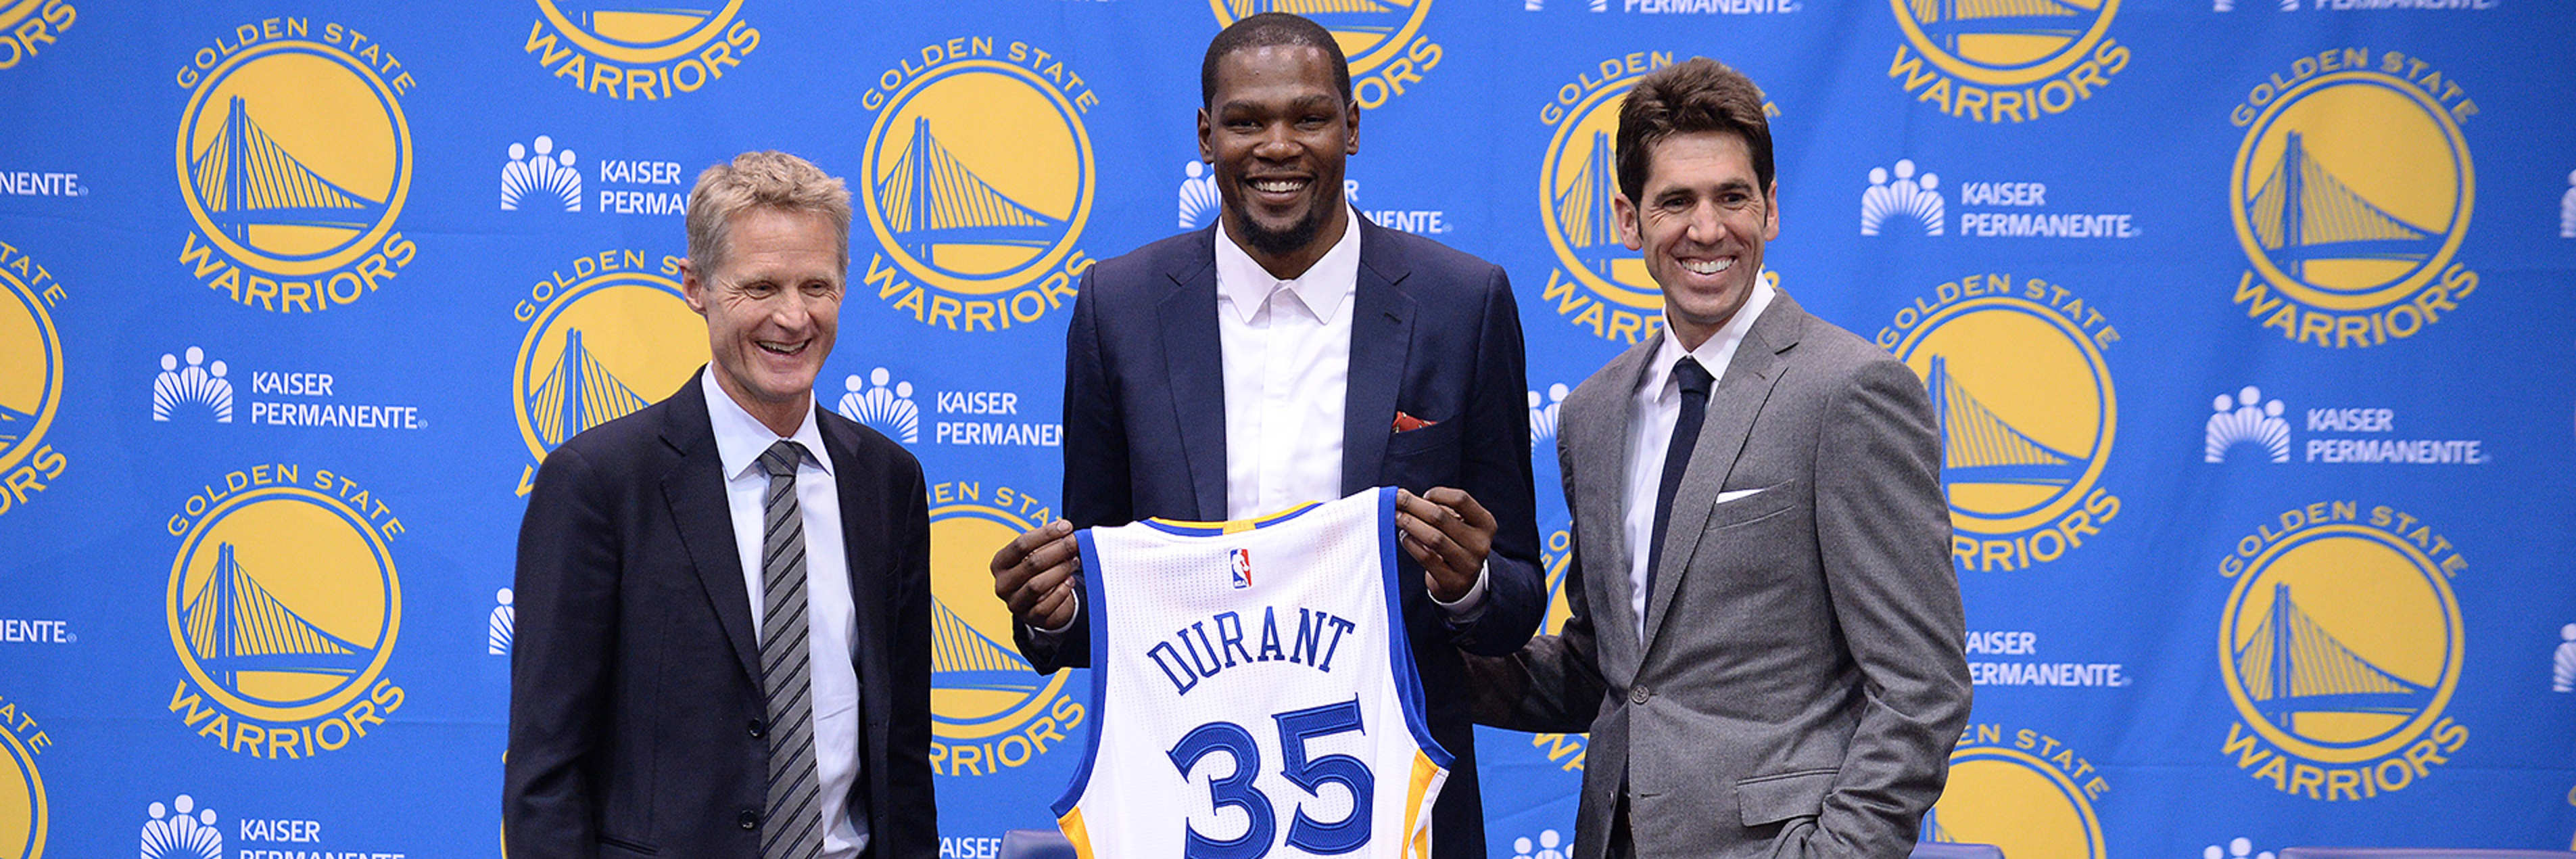 Image result for kevin durant images warriors